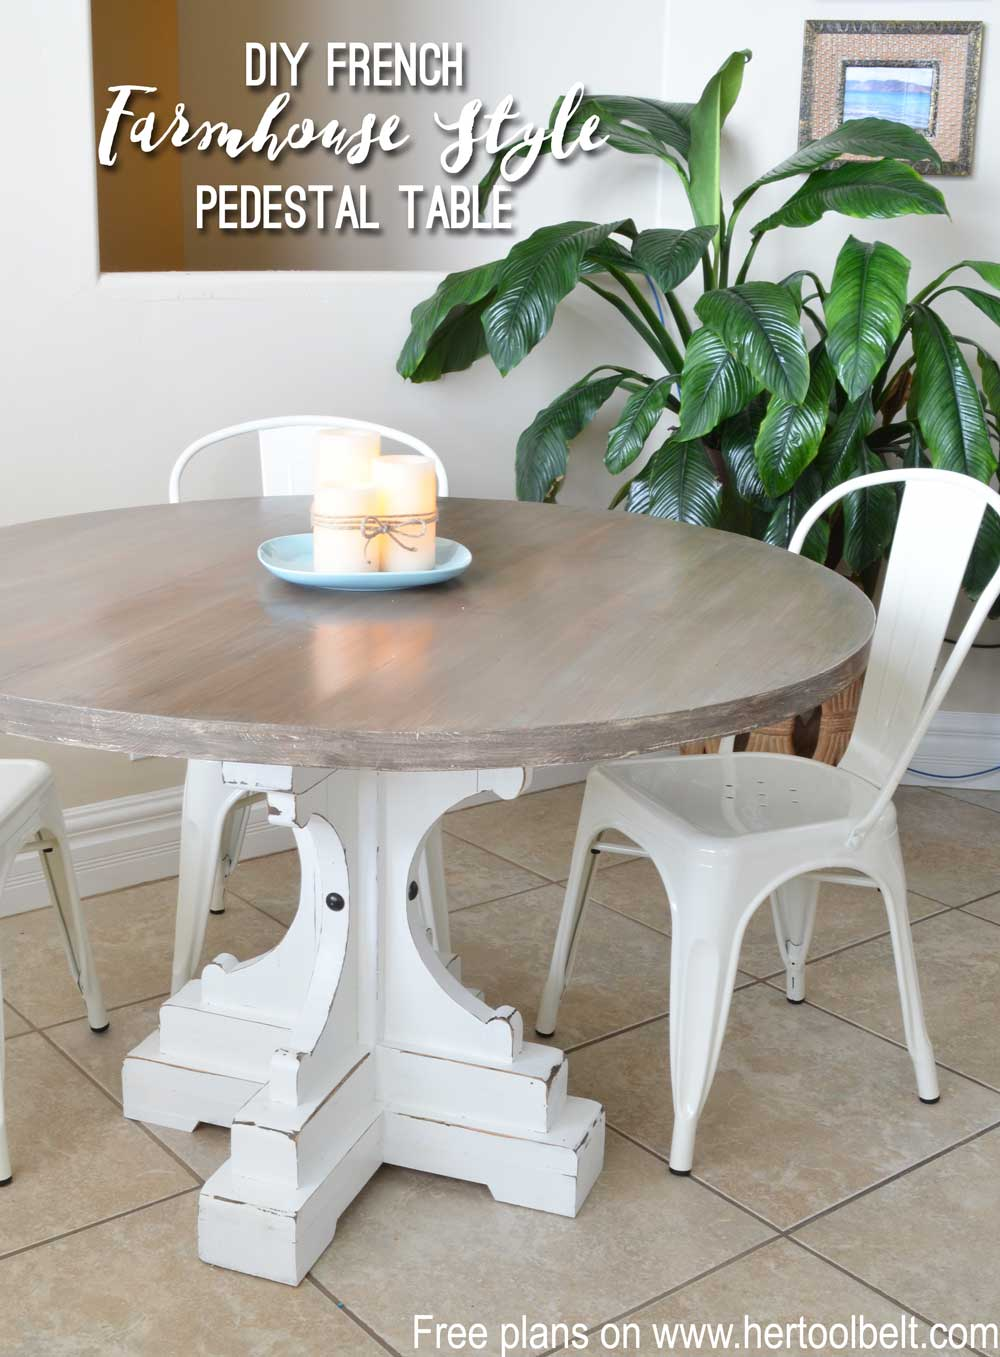 farmhouse style round pedestal table her tool belt diy french white base end plans free woodworking build chunky small bathroom accent tables kitchen side ikea turquoise lamp dog